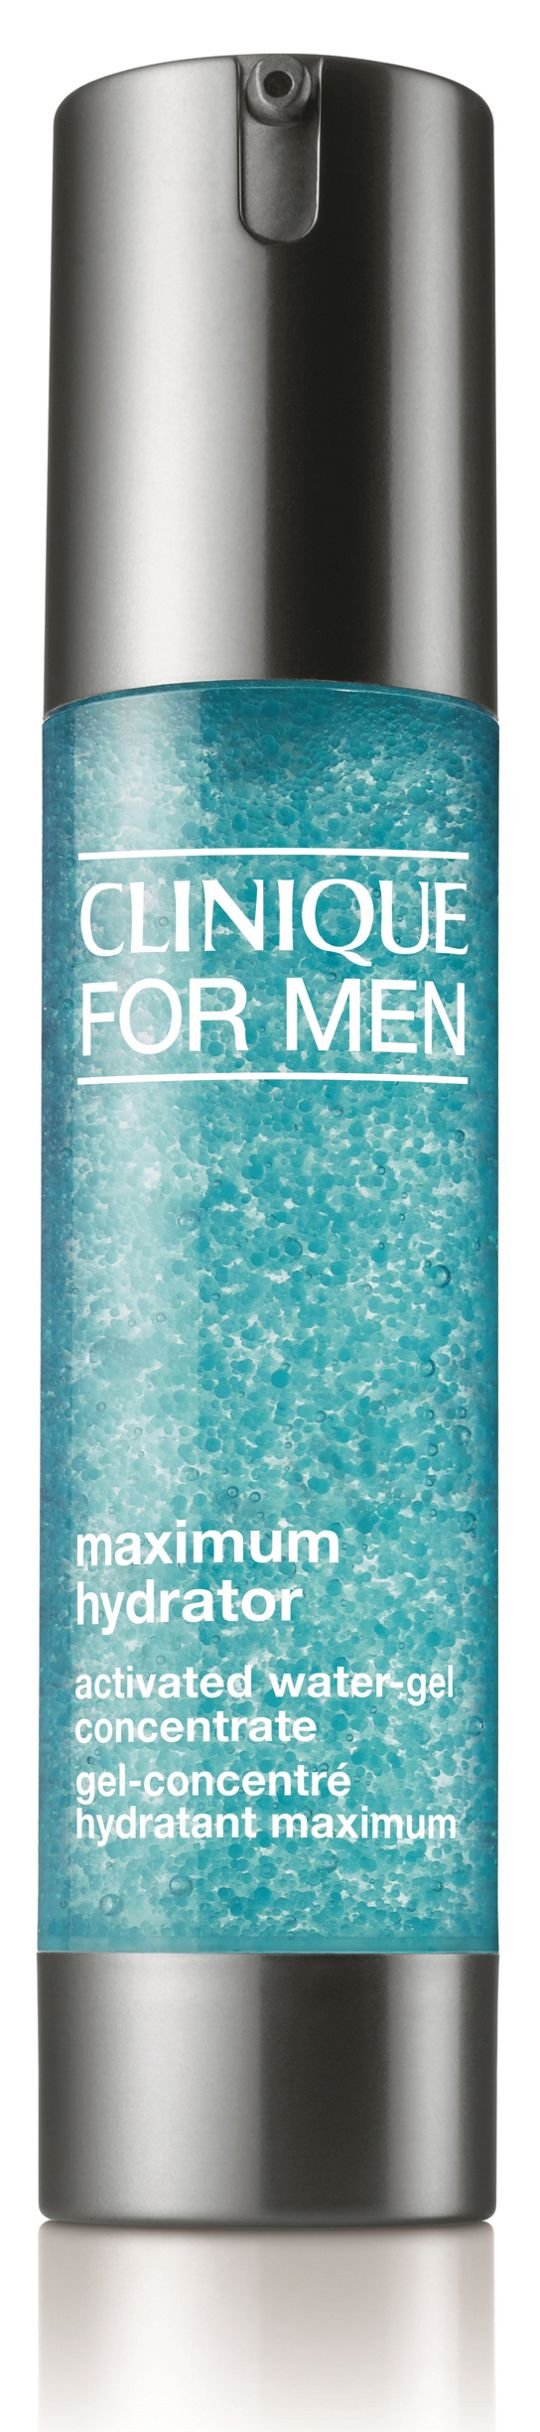 Clinique For Men Maximum Hydrator Water-Gel Concentrate